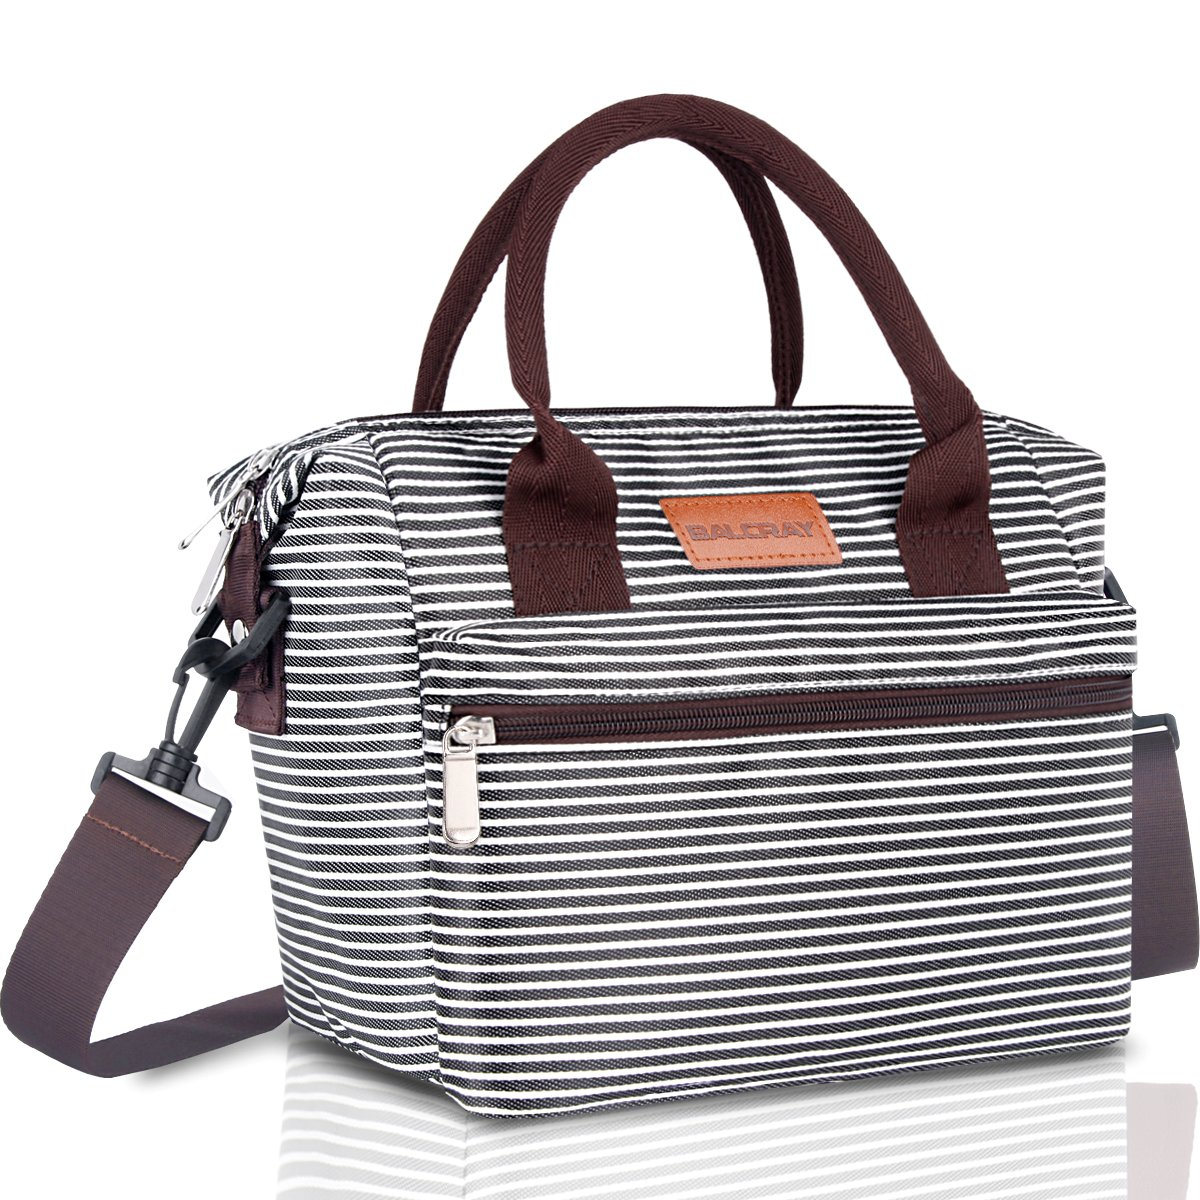 BALORAY Lunch Bag for Women Insulated Lunch Box with Adjustable Shoulder Strap,Water-Resistant Leakproof Cooler Lunch Tote Bag for Work/School/Picnic(Black&White Strip )